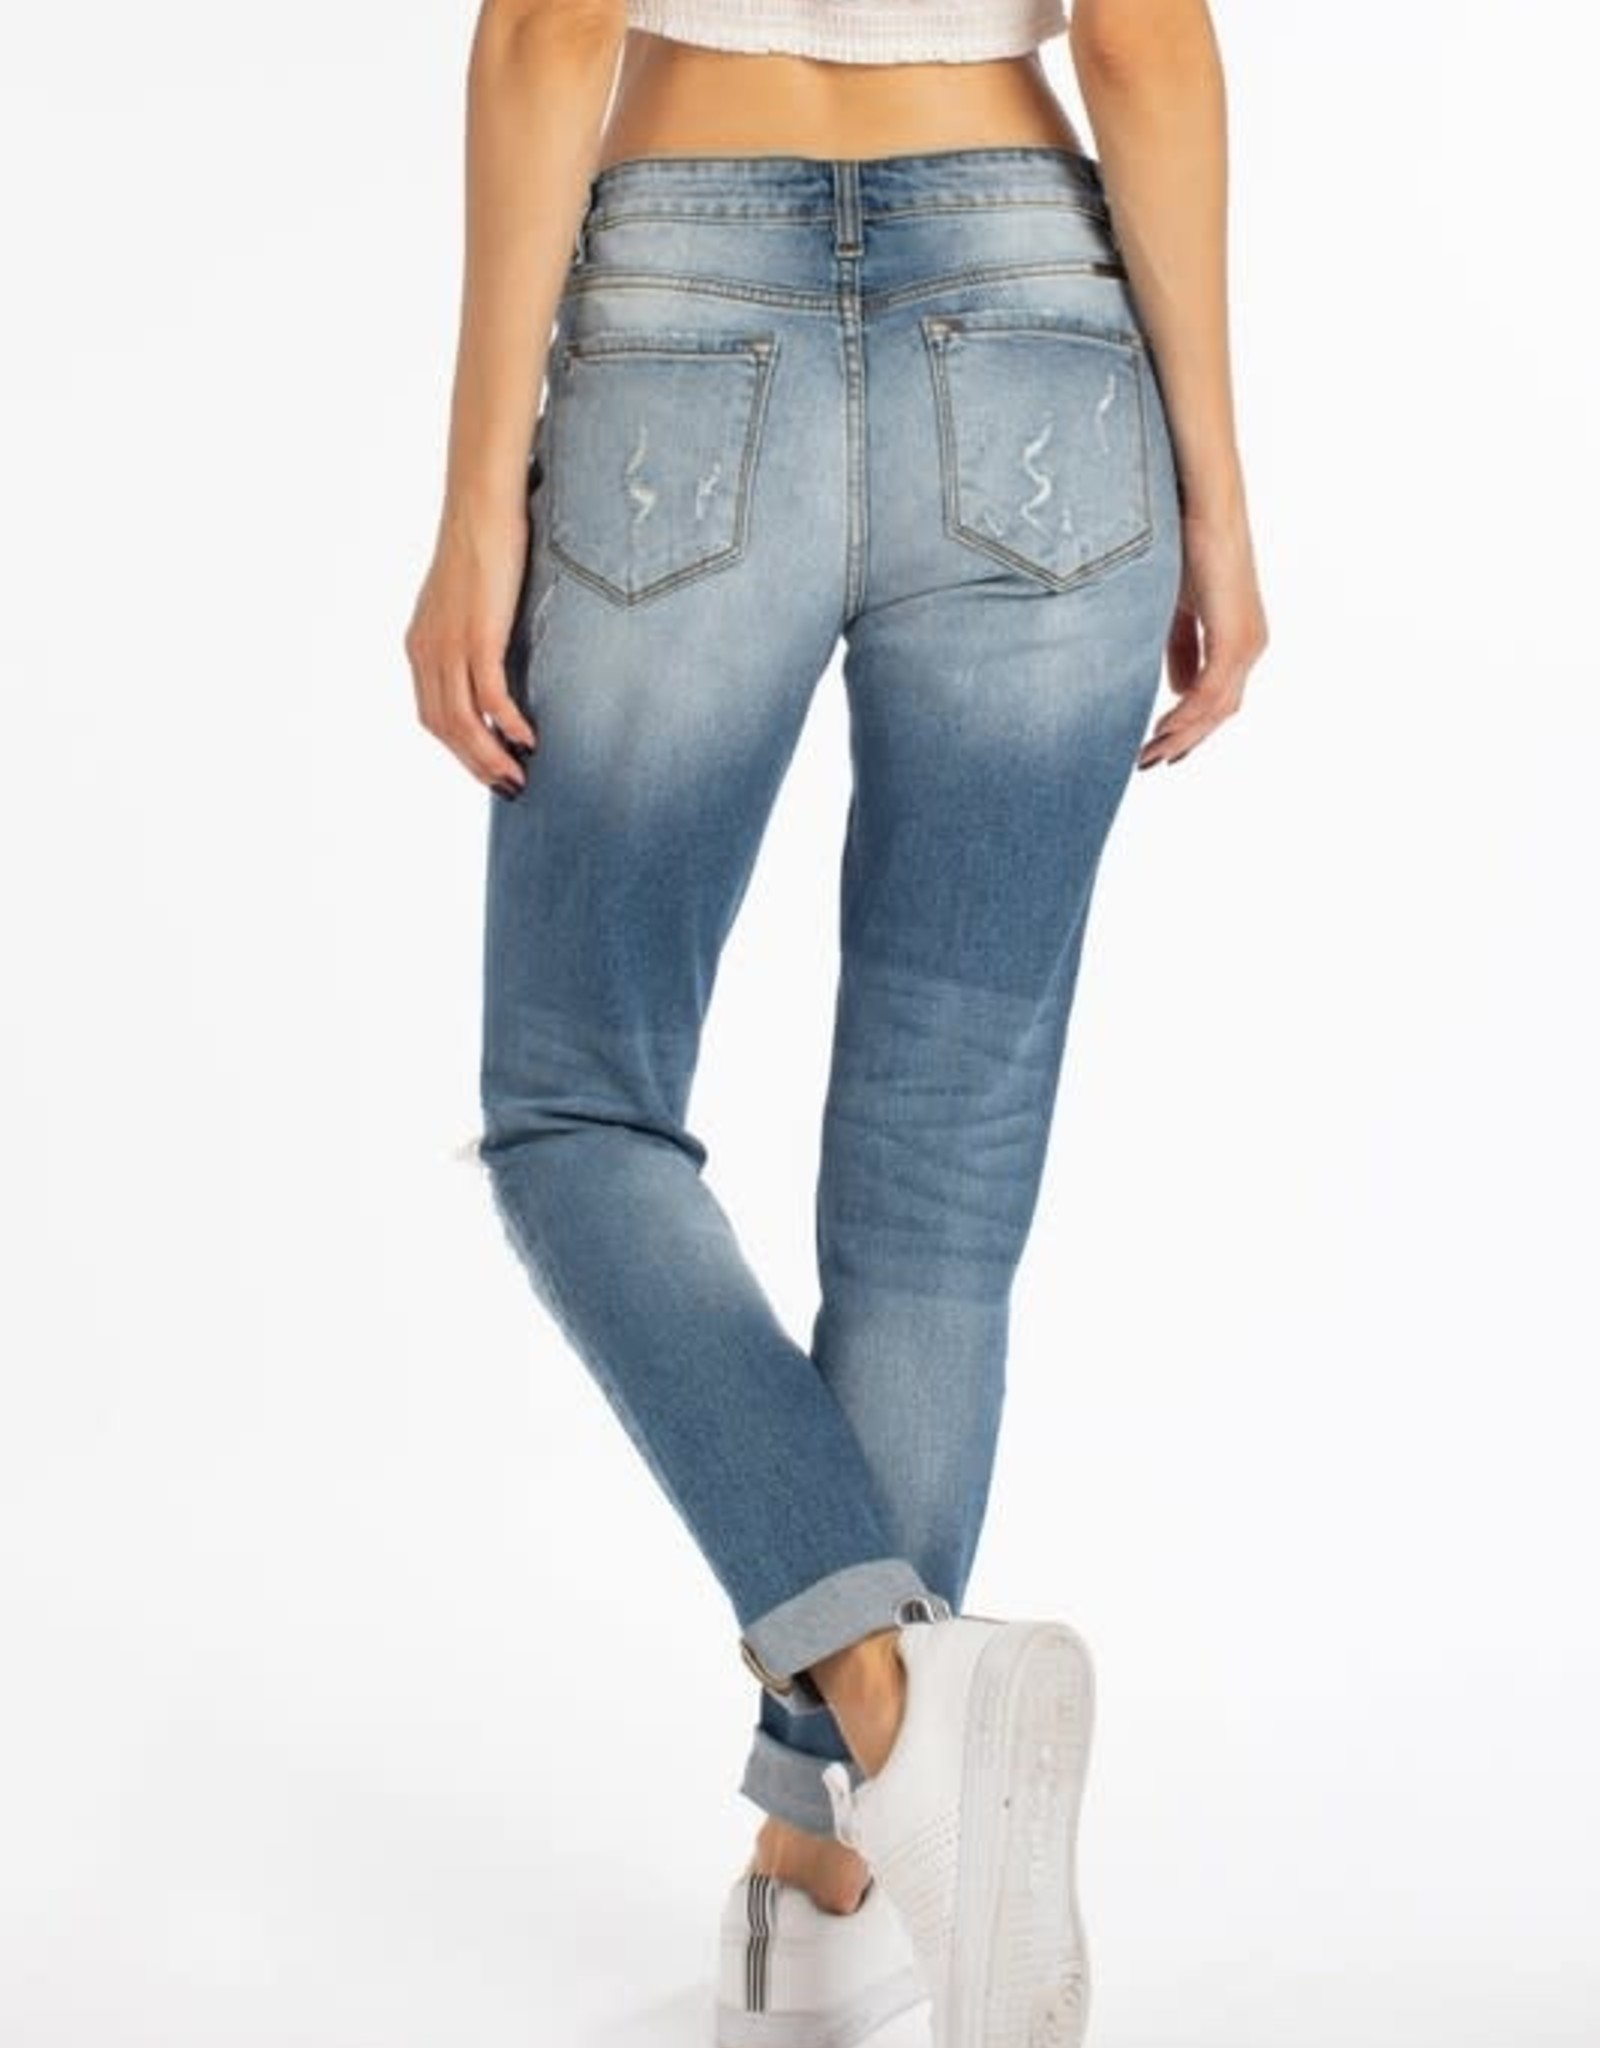 Jeans Kc8364m High Rise Mom Jeans Edgewood Outfitters